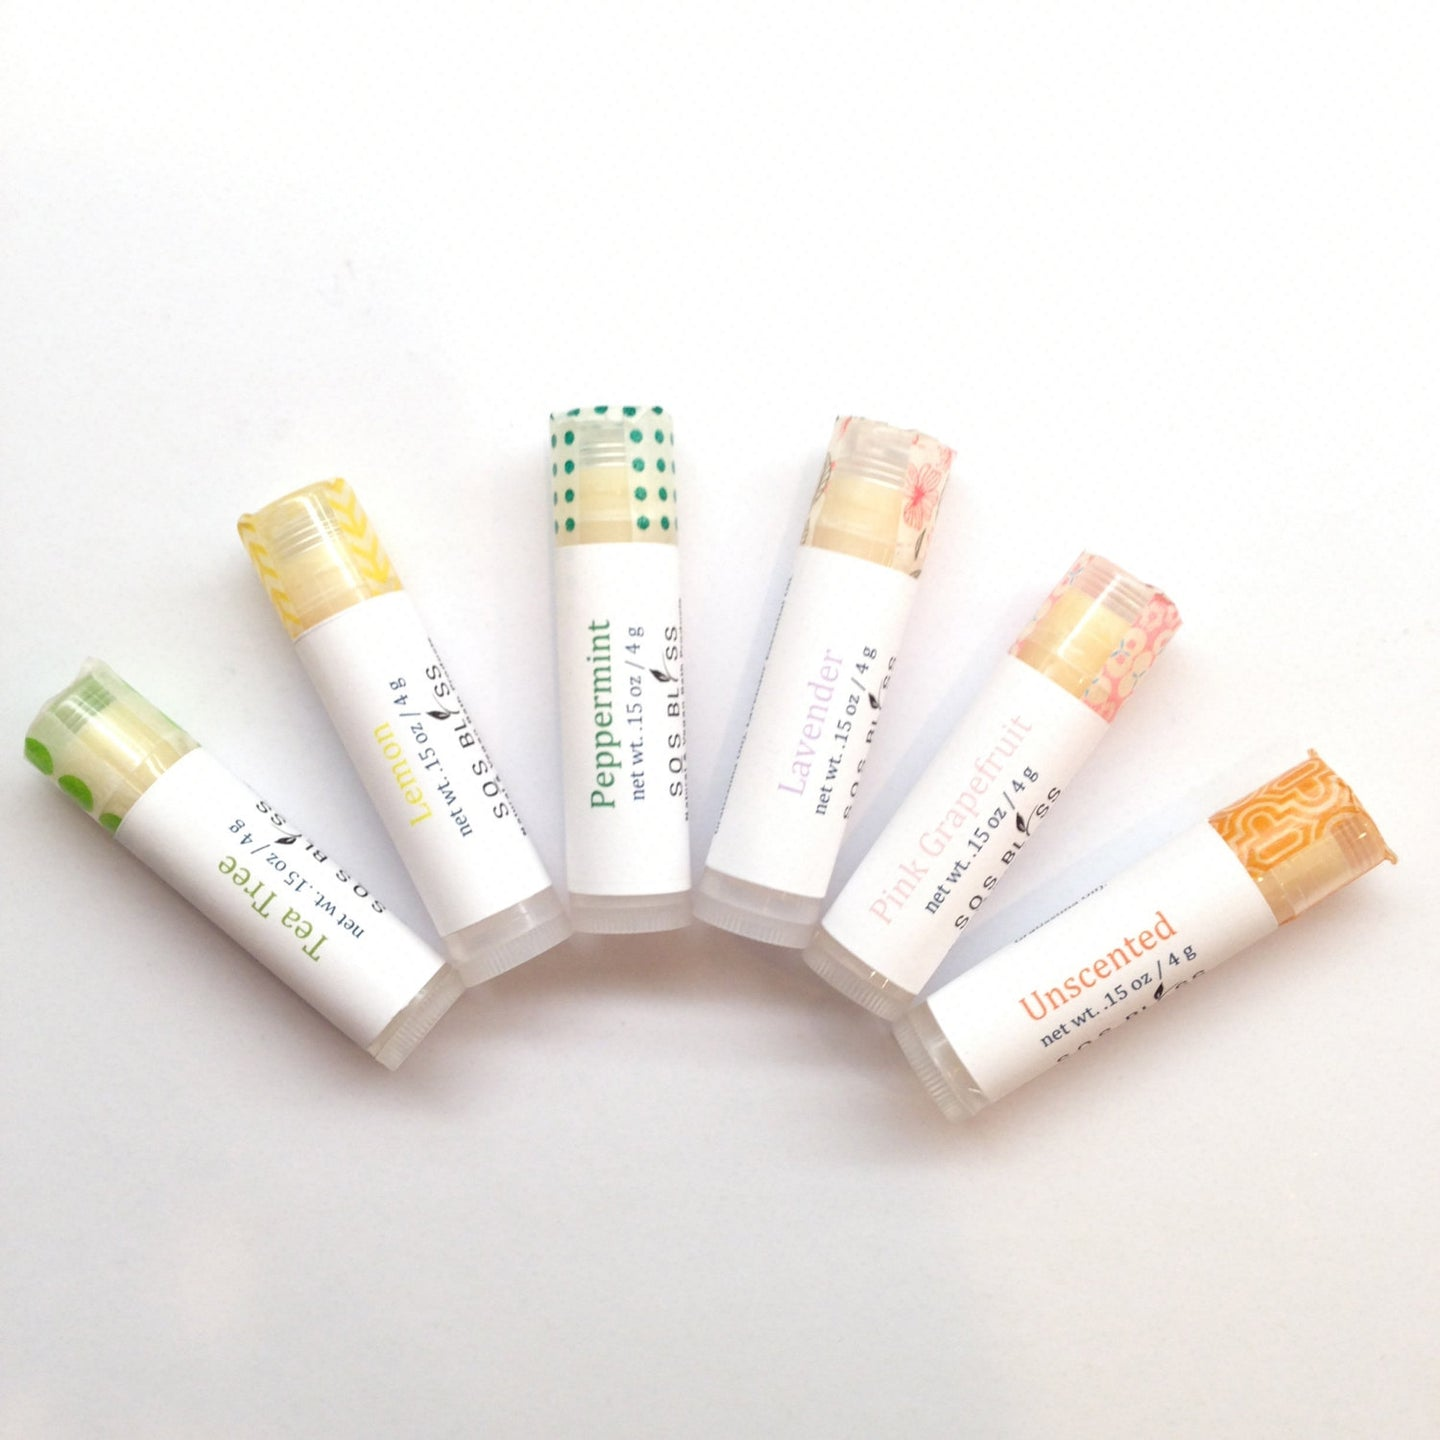 6 piece lip balm gift set Creamy and nourishing